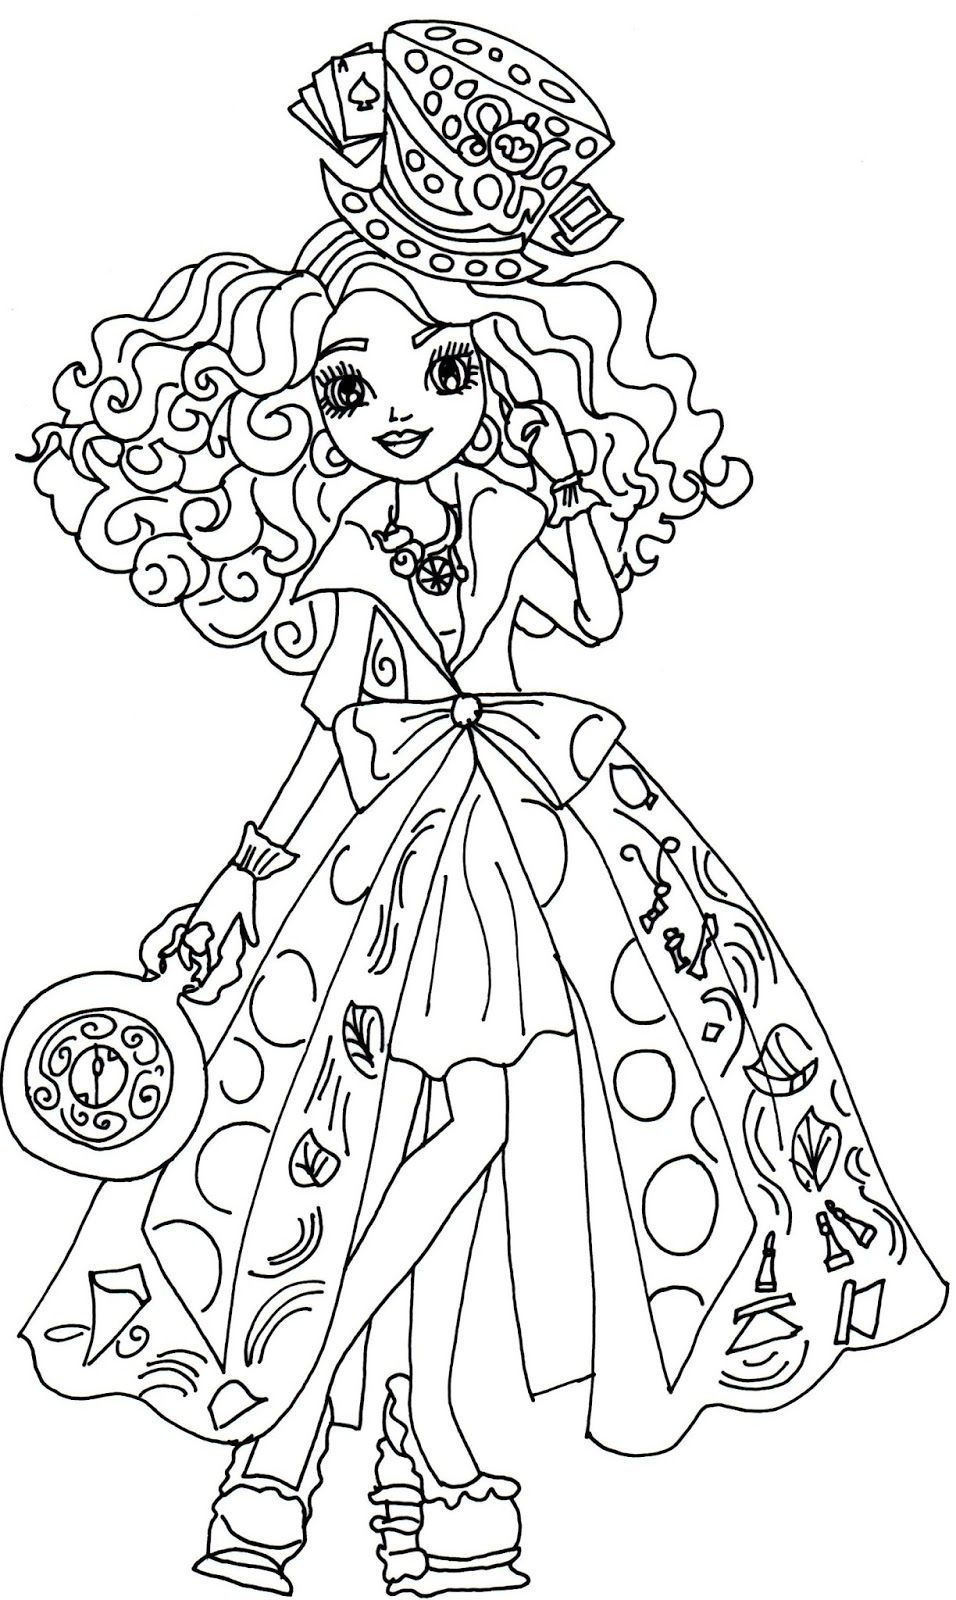 Printable coloring pages ever after high - Free Printable Ever After High Coloring Pages Madeline Hatter Way Too Wonderland Ever After High